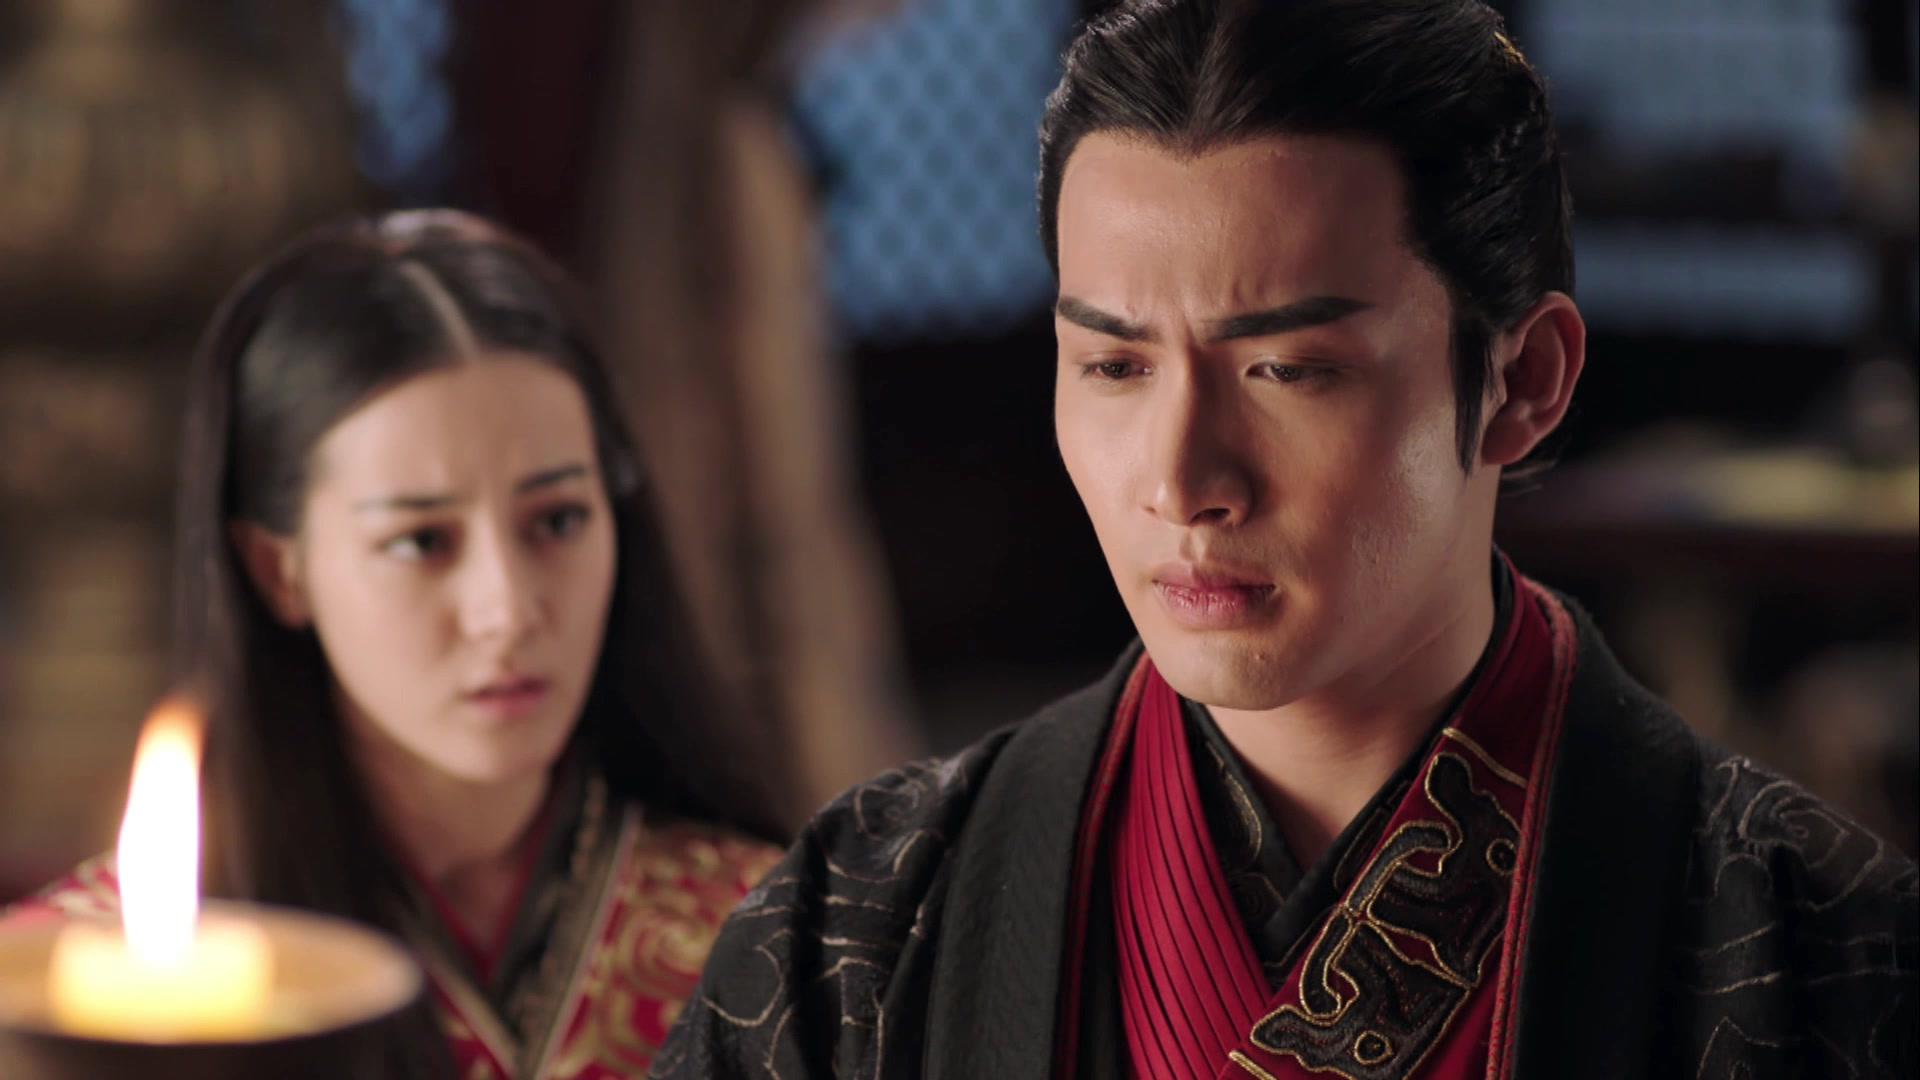 The King's Woman Episode 31